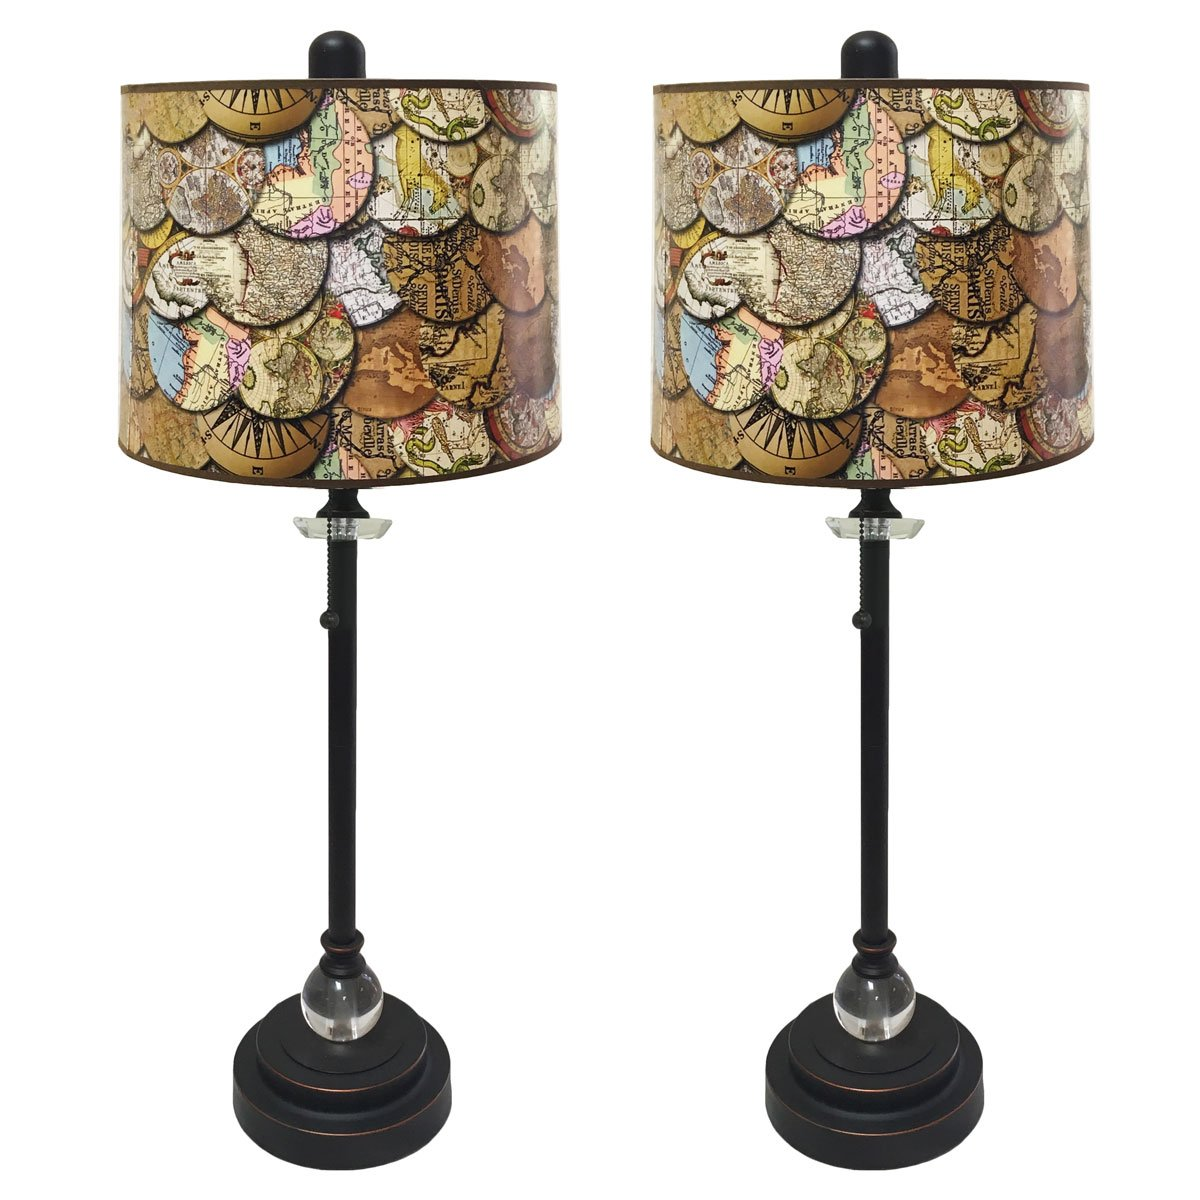 Royal Designs 28'' Crystal and Oil Rub Bronze Buffet Lamp with Vintage Old World Maps Design Hard Back Lamp Shade, Set of 2 by Royal Designs, Inc